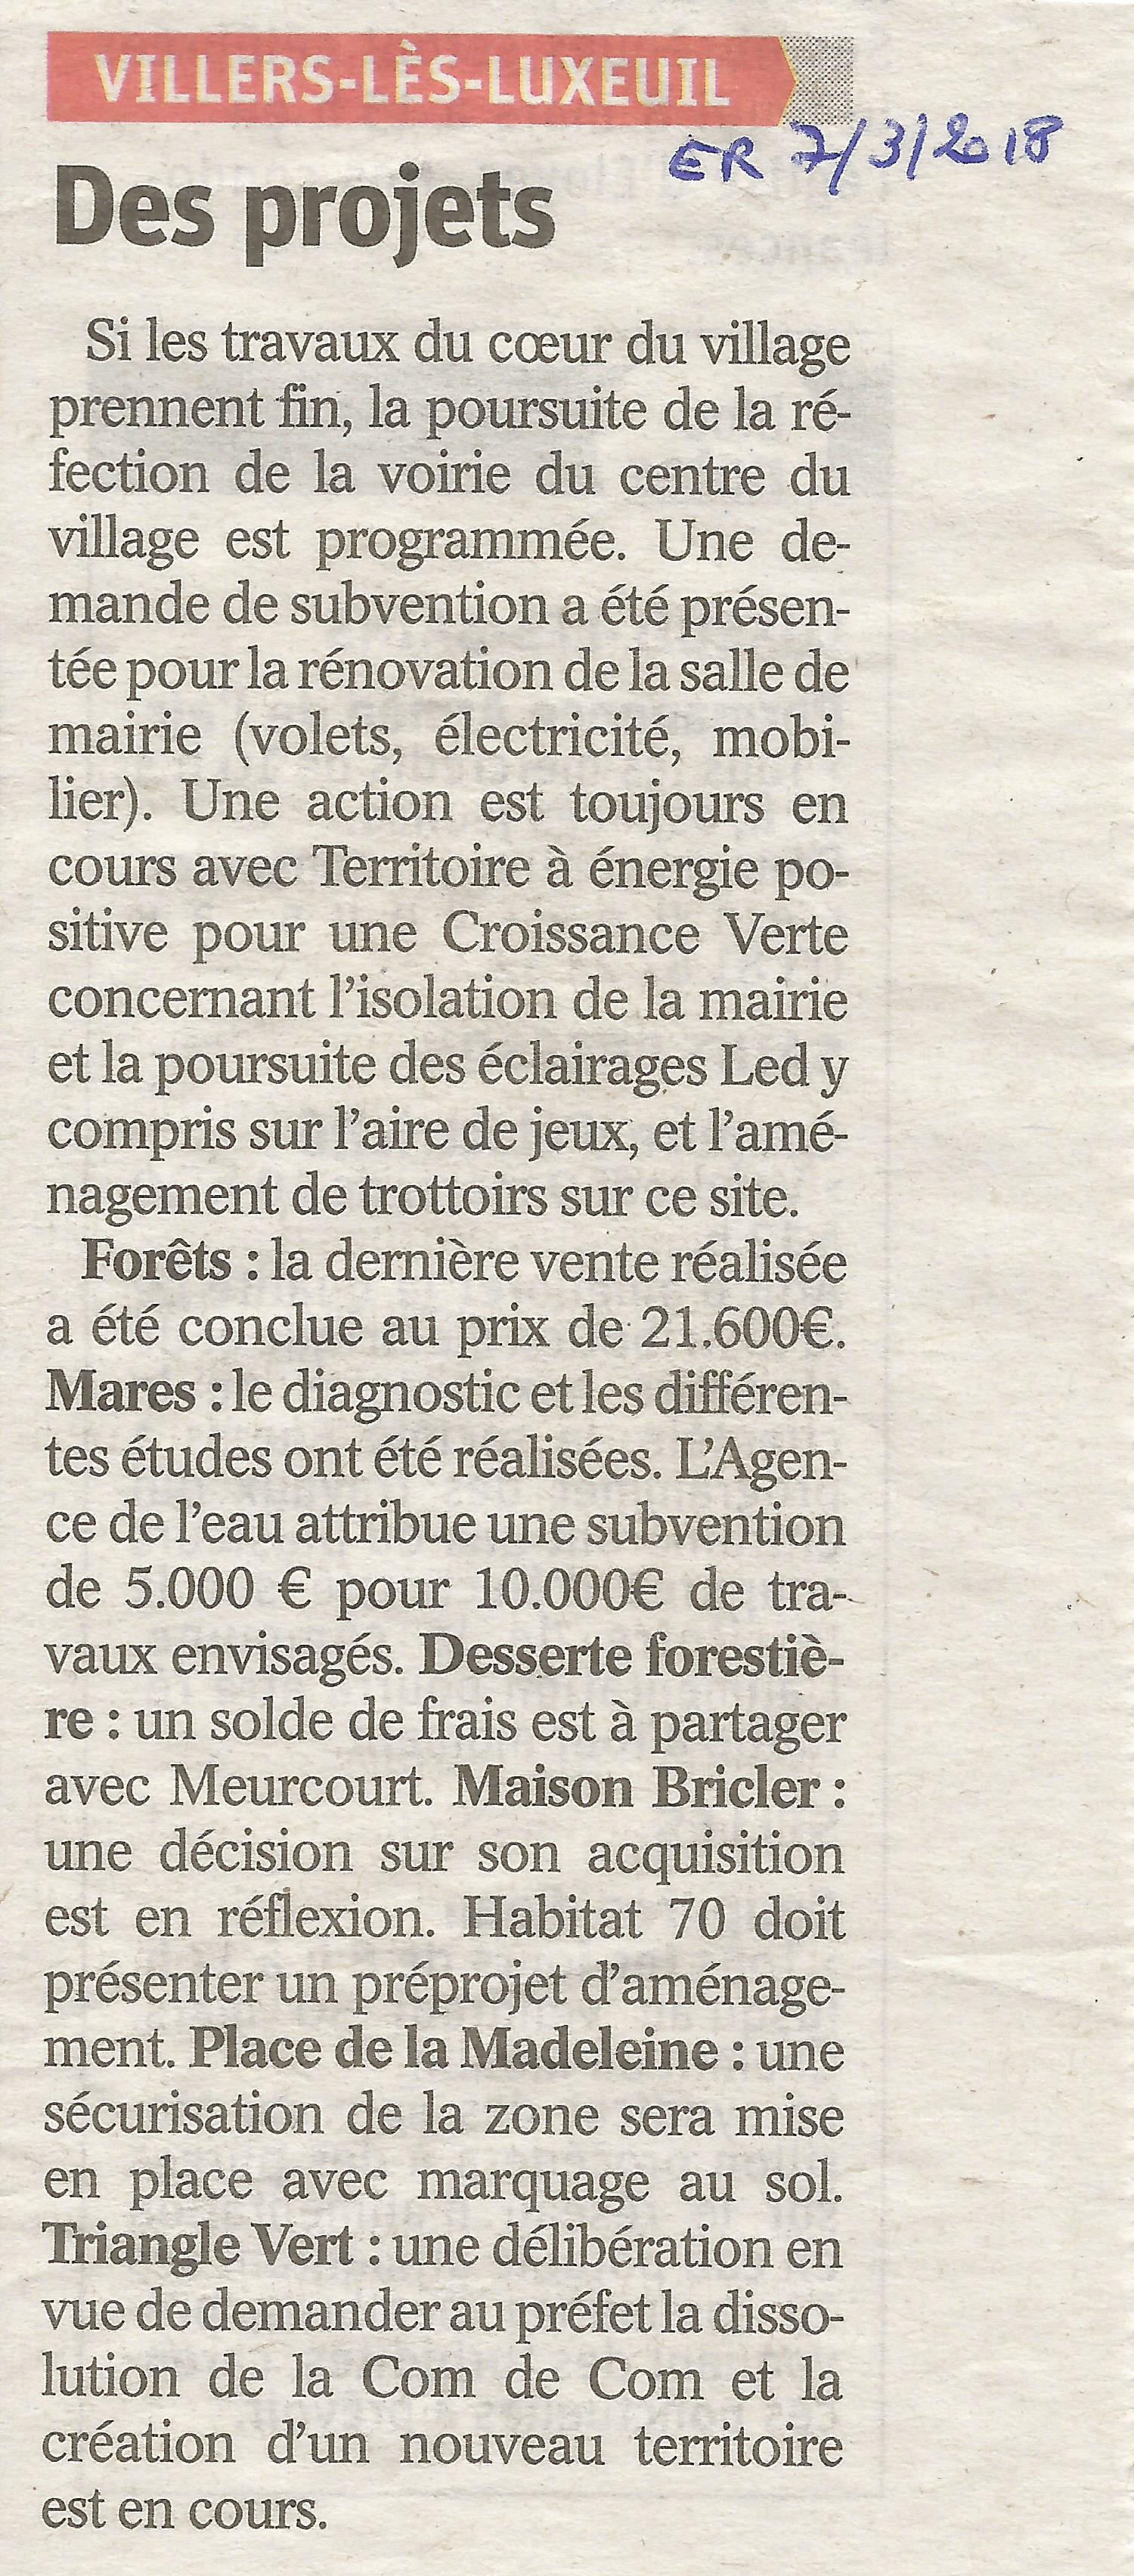 https://www.villers-les-luxeuil.com/projets/villers/files/images/2018_Mairie/Presse/2018_03_07.jpg